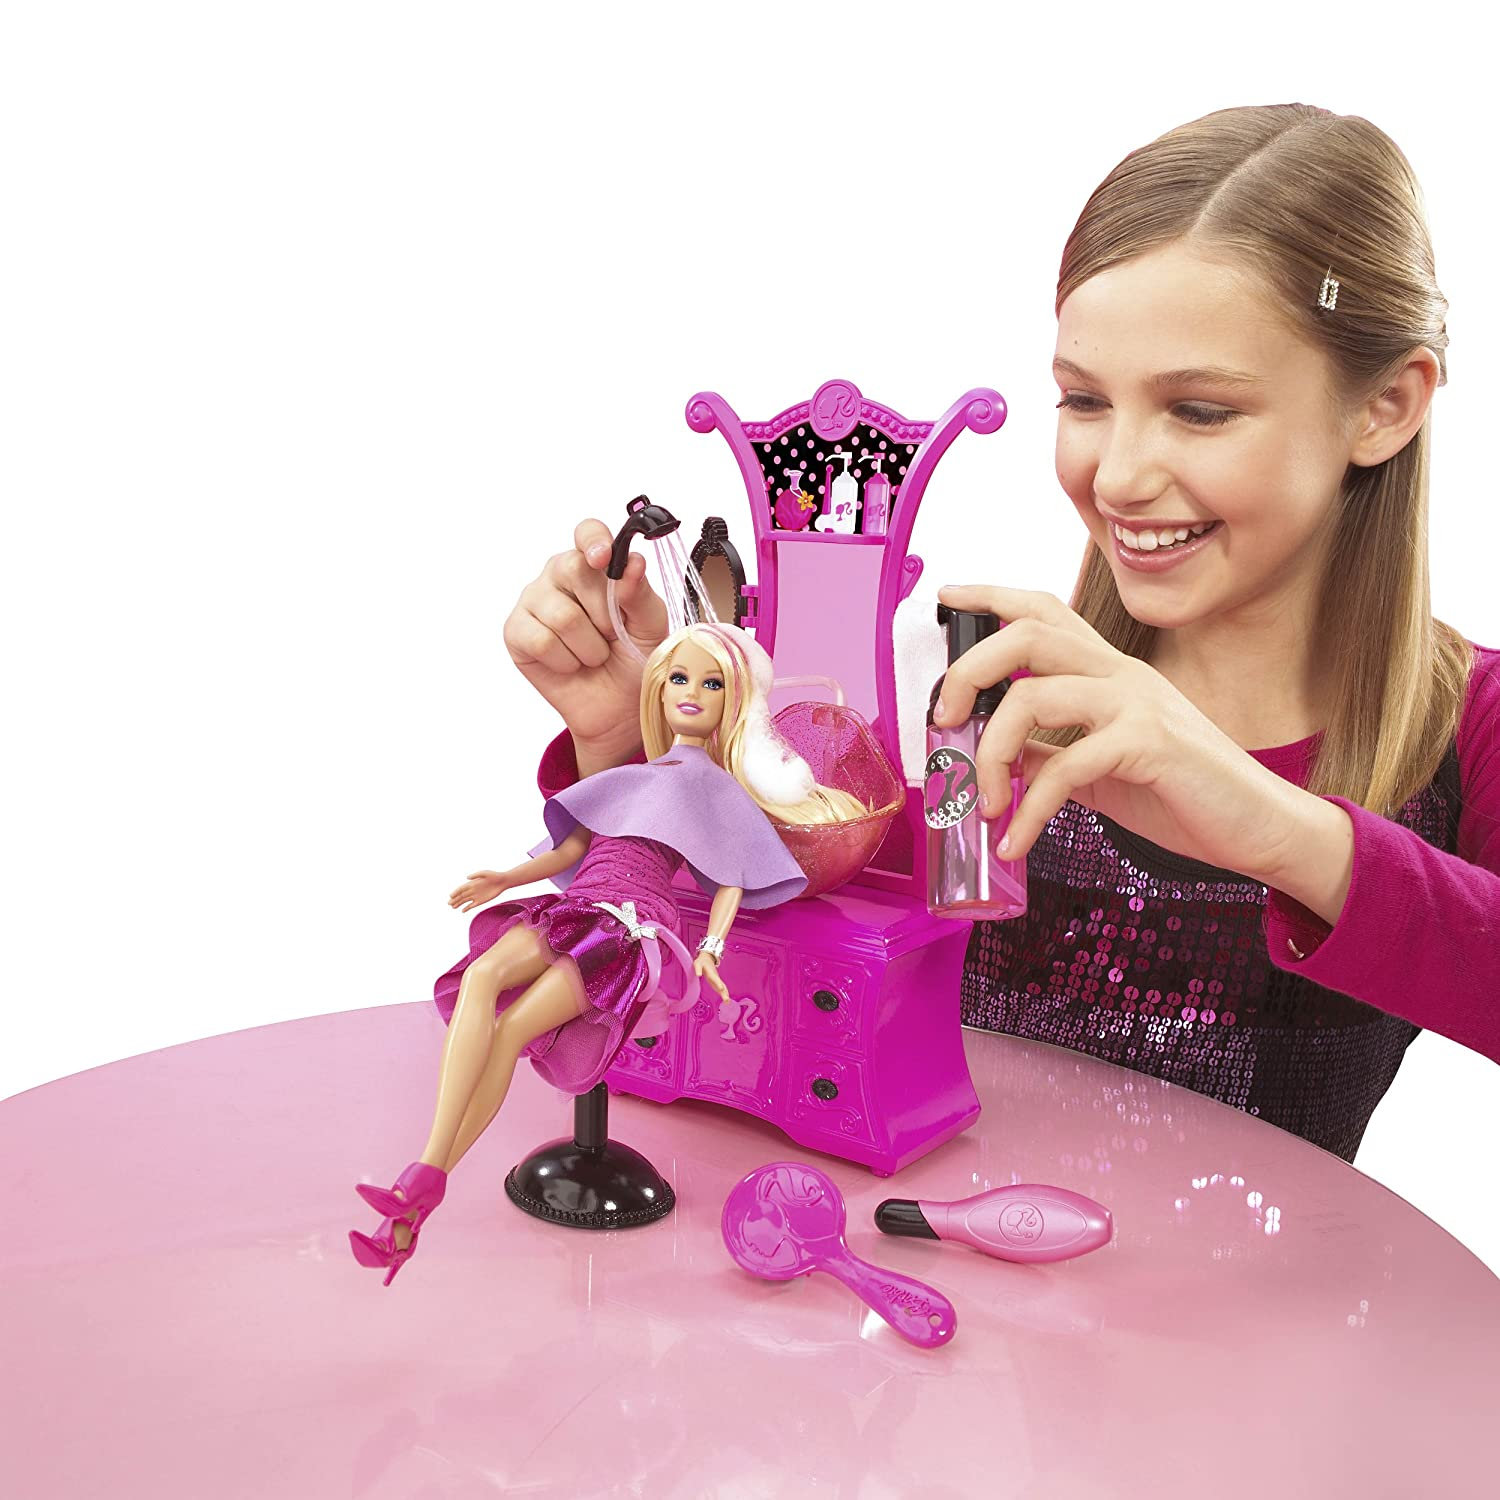 Barbie Hair Salon Doll Amazoncouk Toys Games - Hairstyle barbie doll